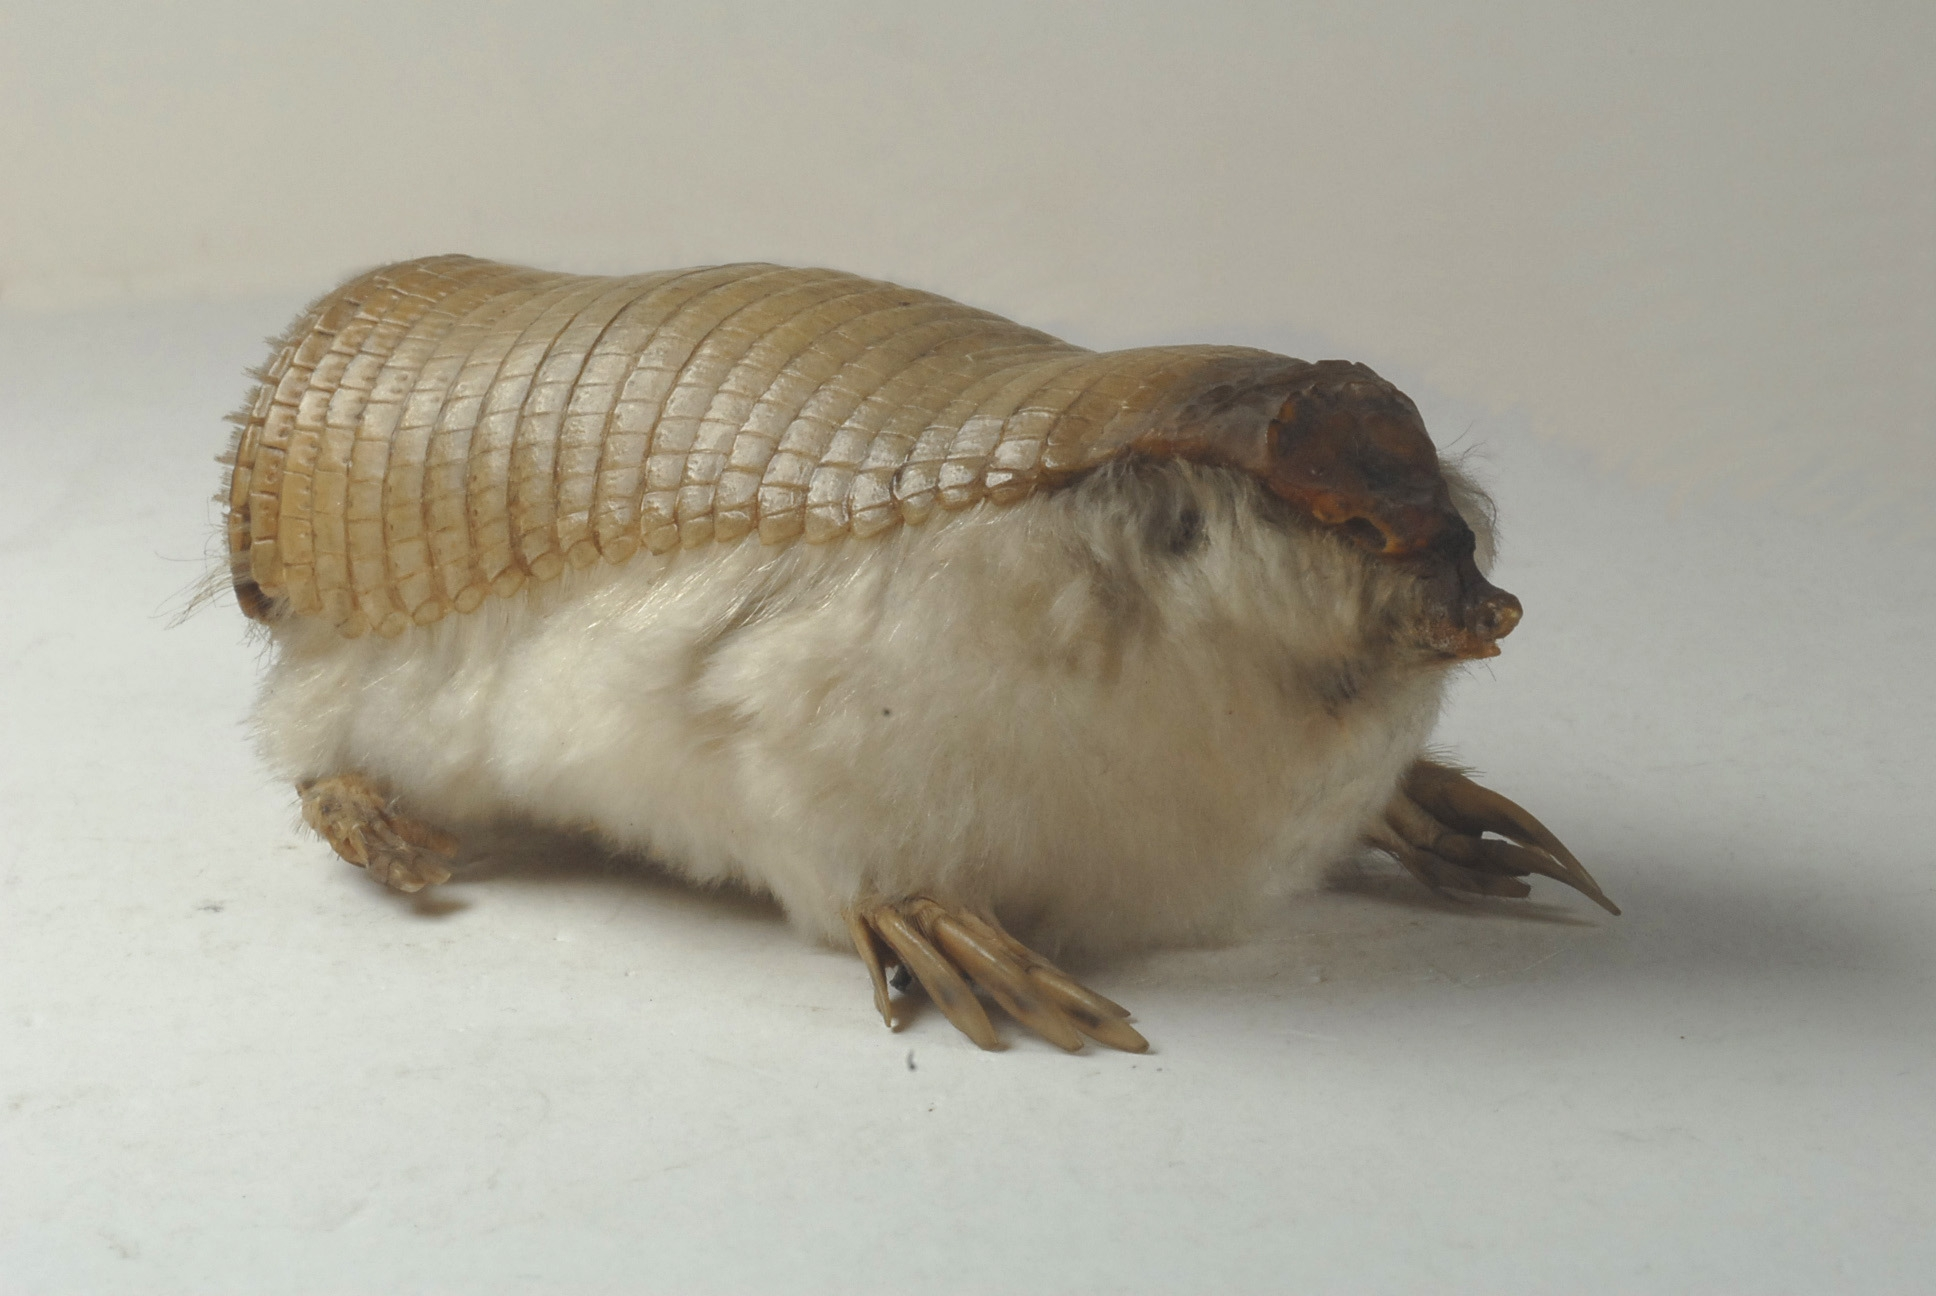 The smallest armadillo in the world.